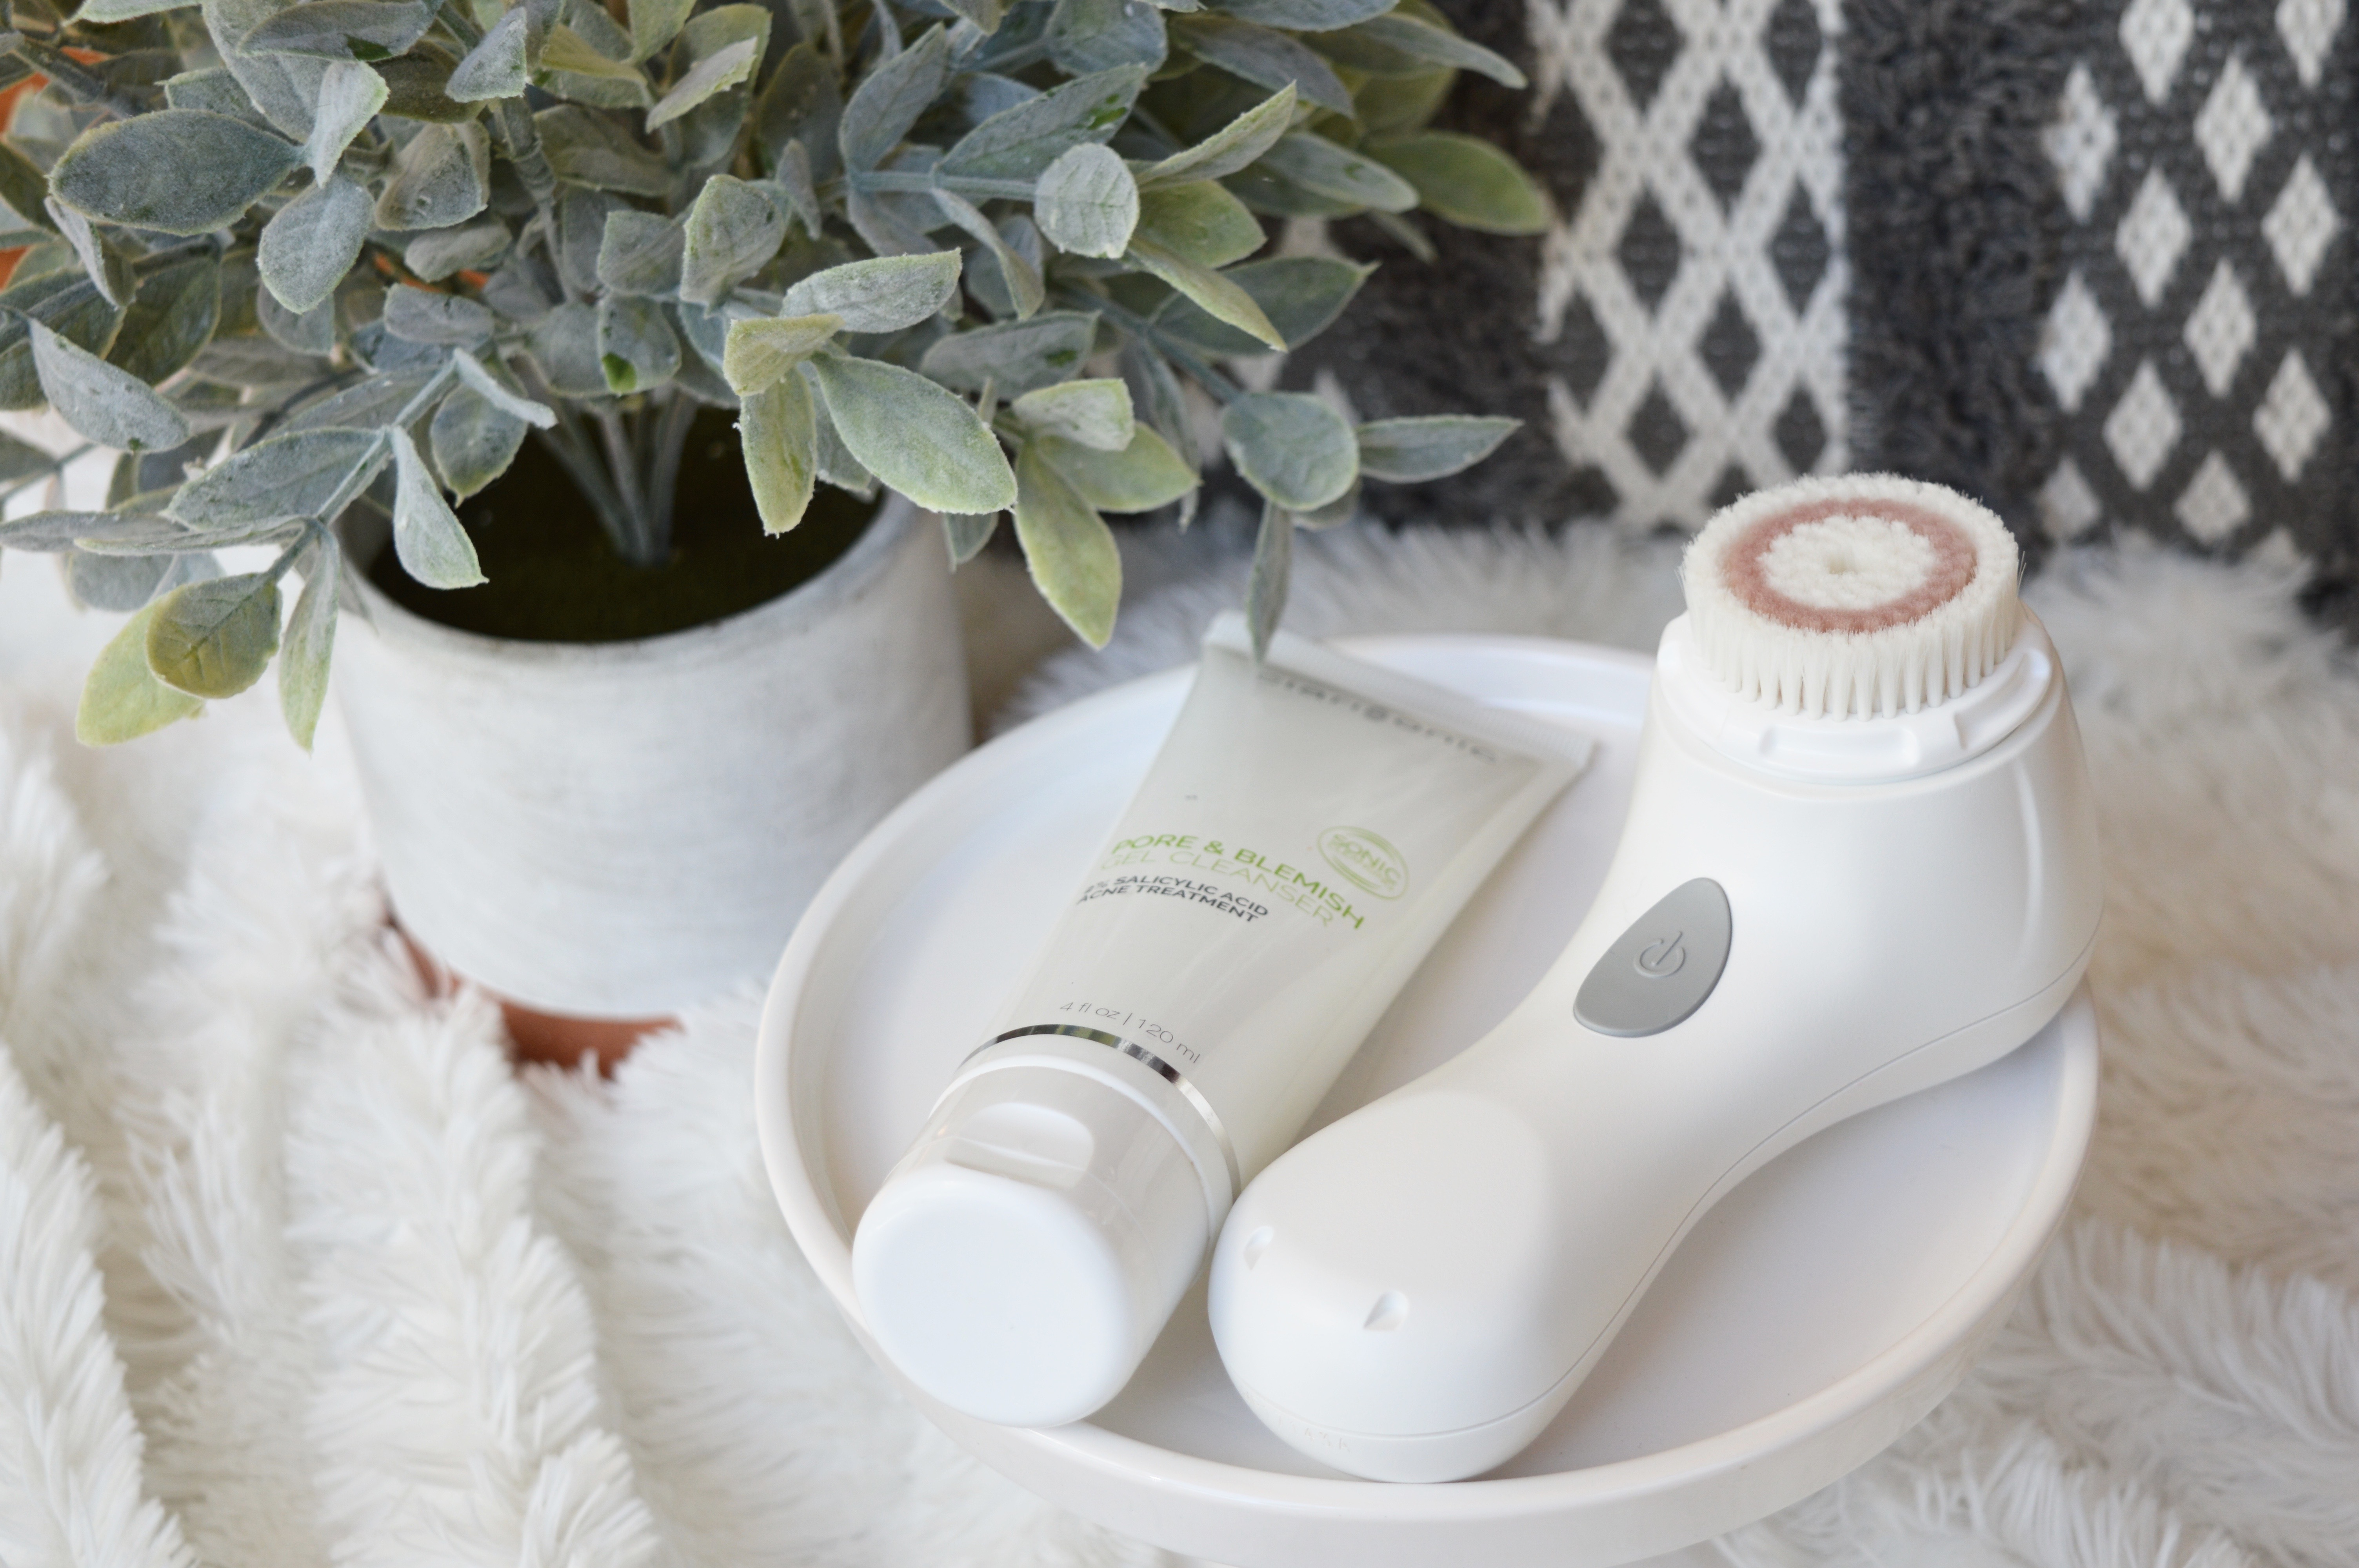 Deep Skincare Cleansing with Clarisonic + Salicylic Acid Face Wash for Acne Prone Skin